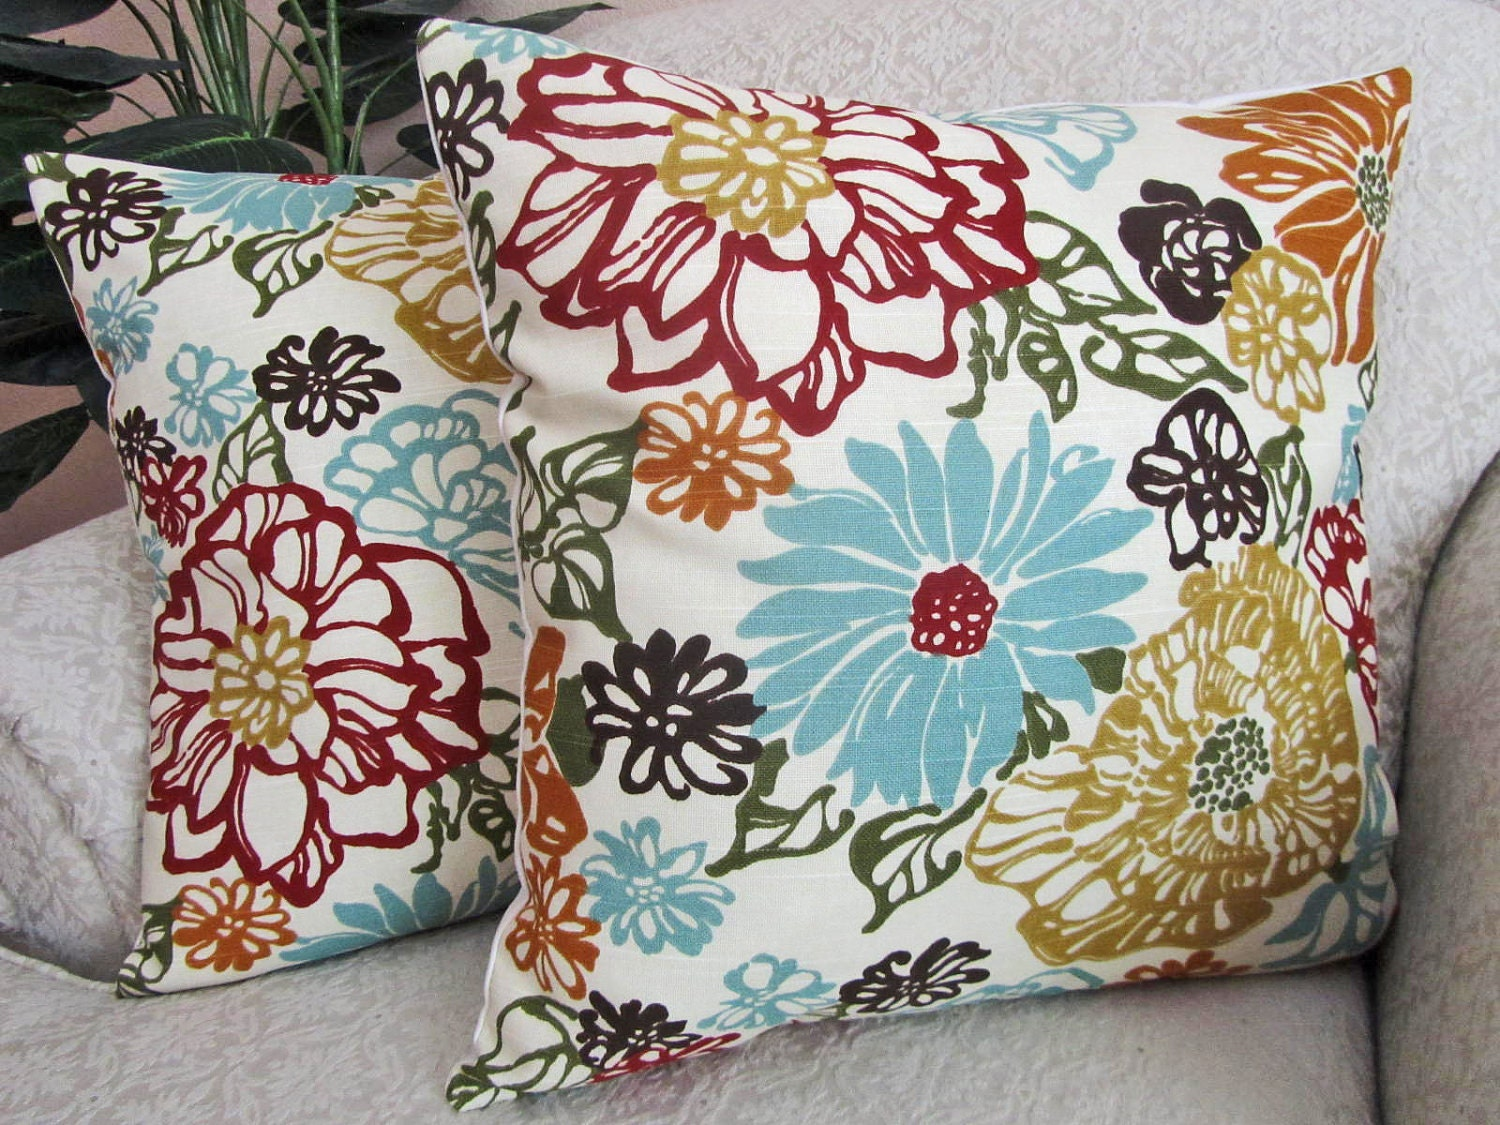 Decorative Floral Pillow Covers : Floral Throw Pillow Cover Decorative Pillow Robins Egg Blue